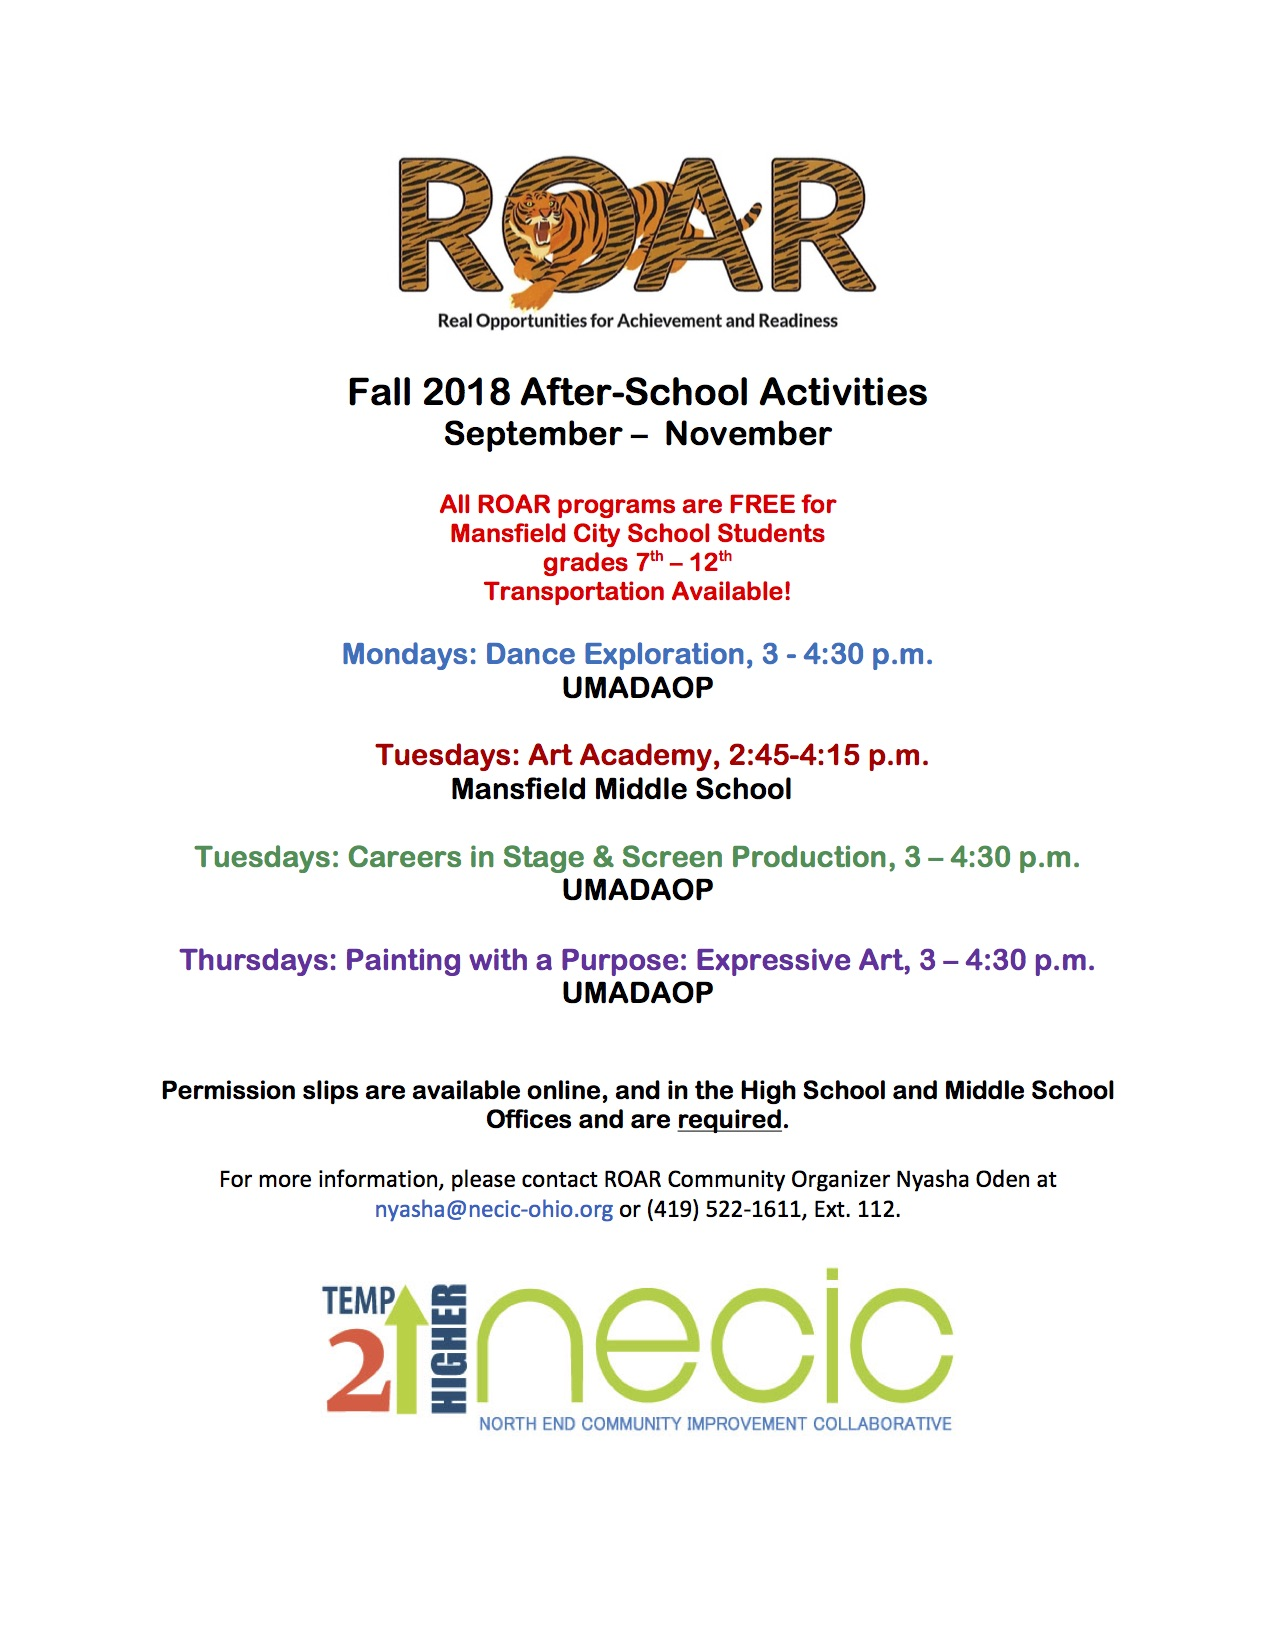 ROAR Fall Mini-Modules begin this week! Sign up here!